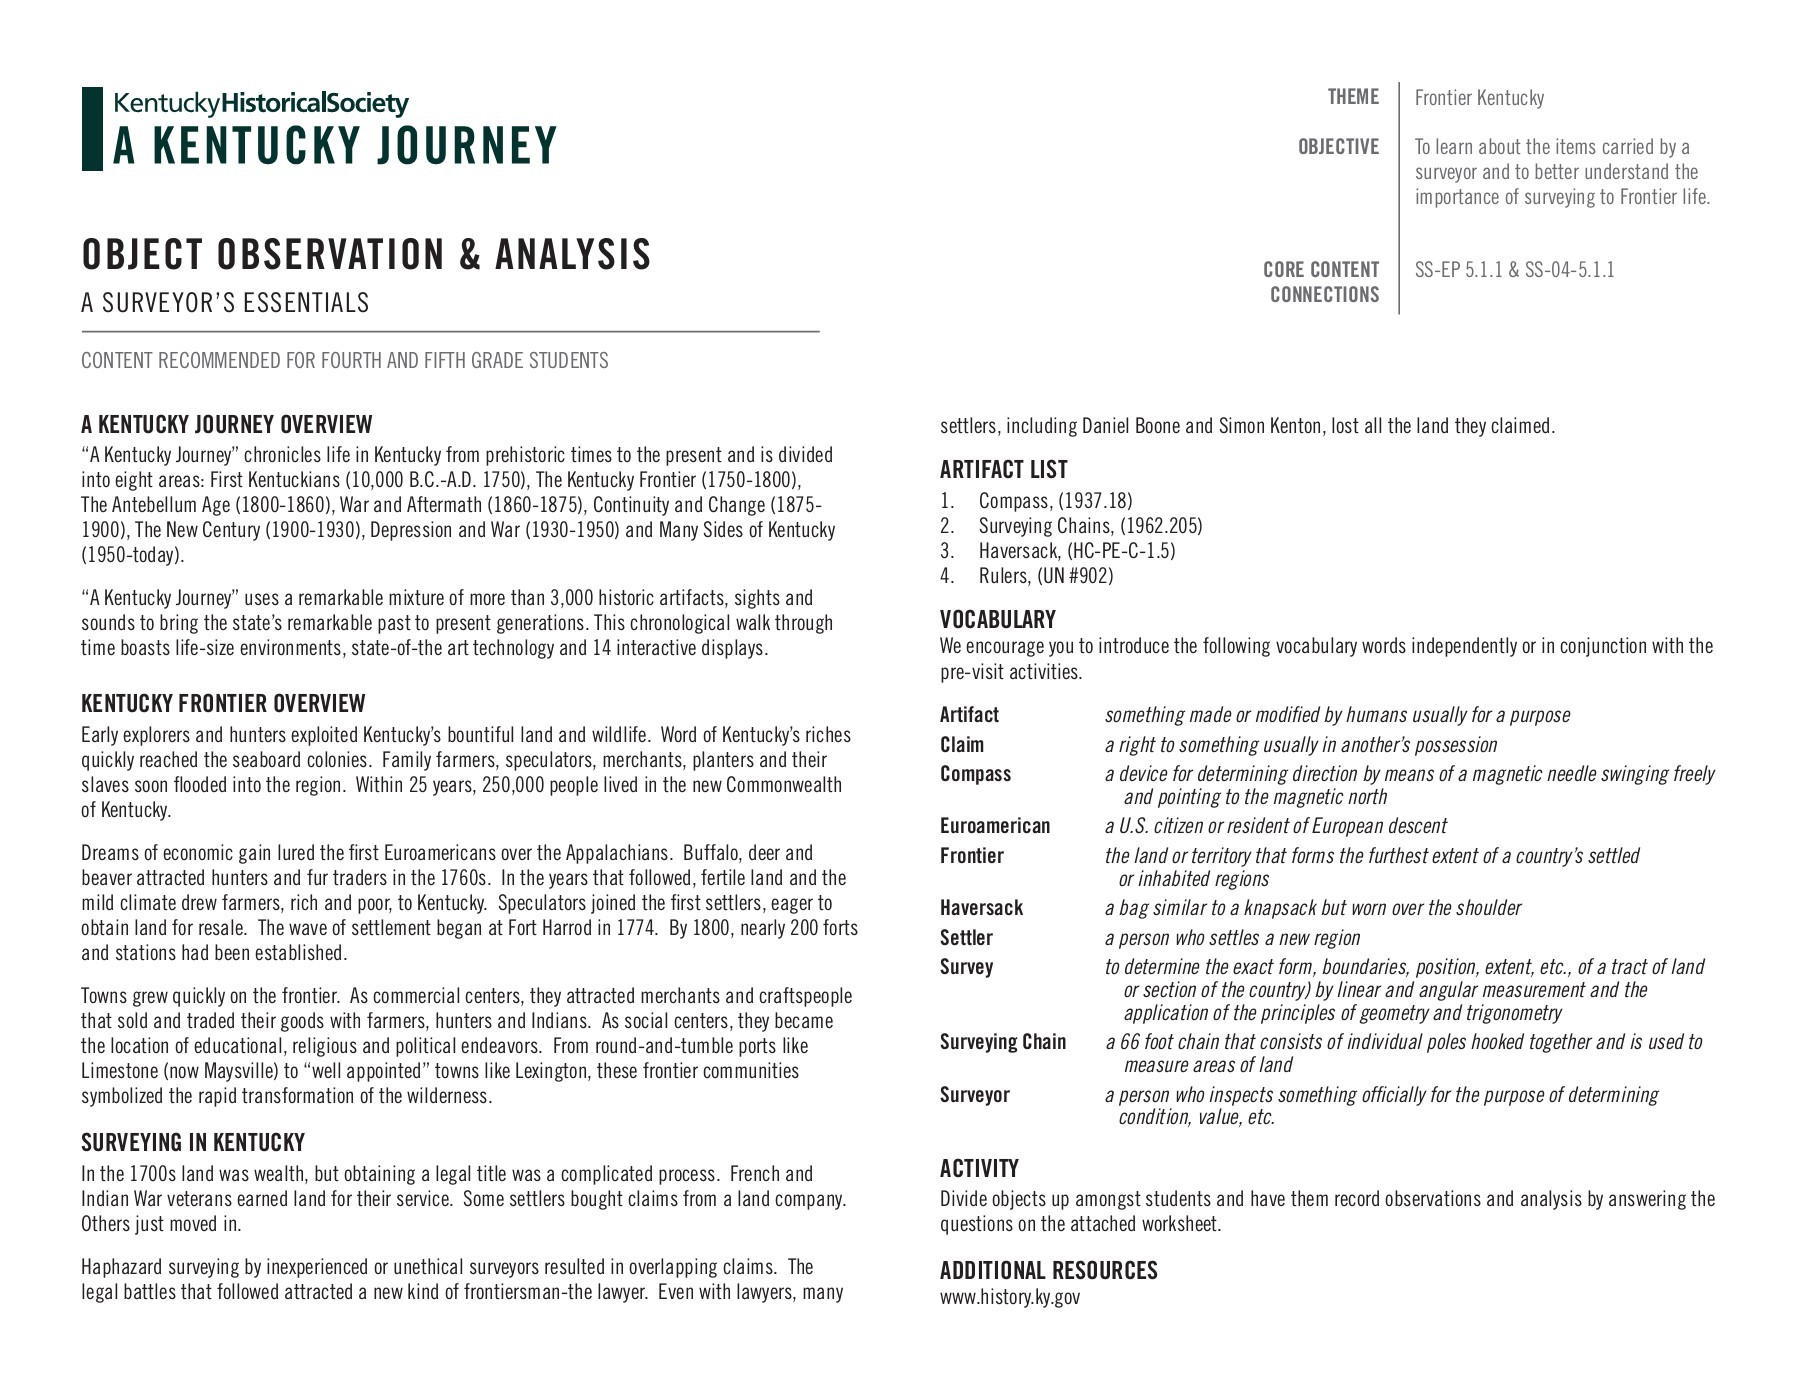 hight resolution of A KENTUCKY JOURNEY - Kentucky Historical Society Pages 1 - 7 - Flip PDF  Download   FlipHTML5